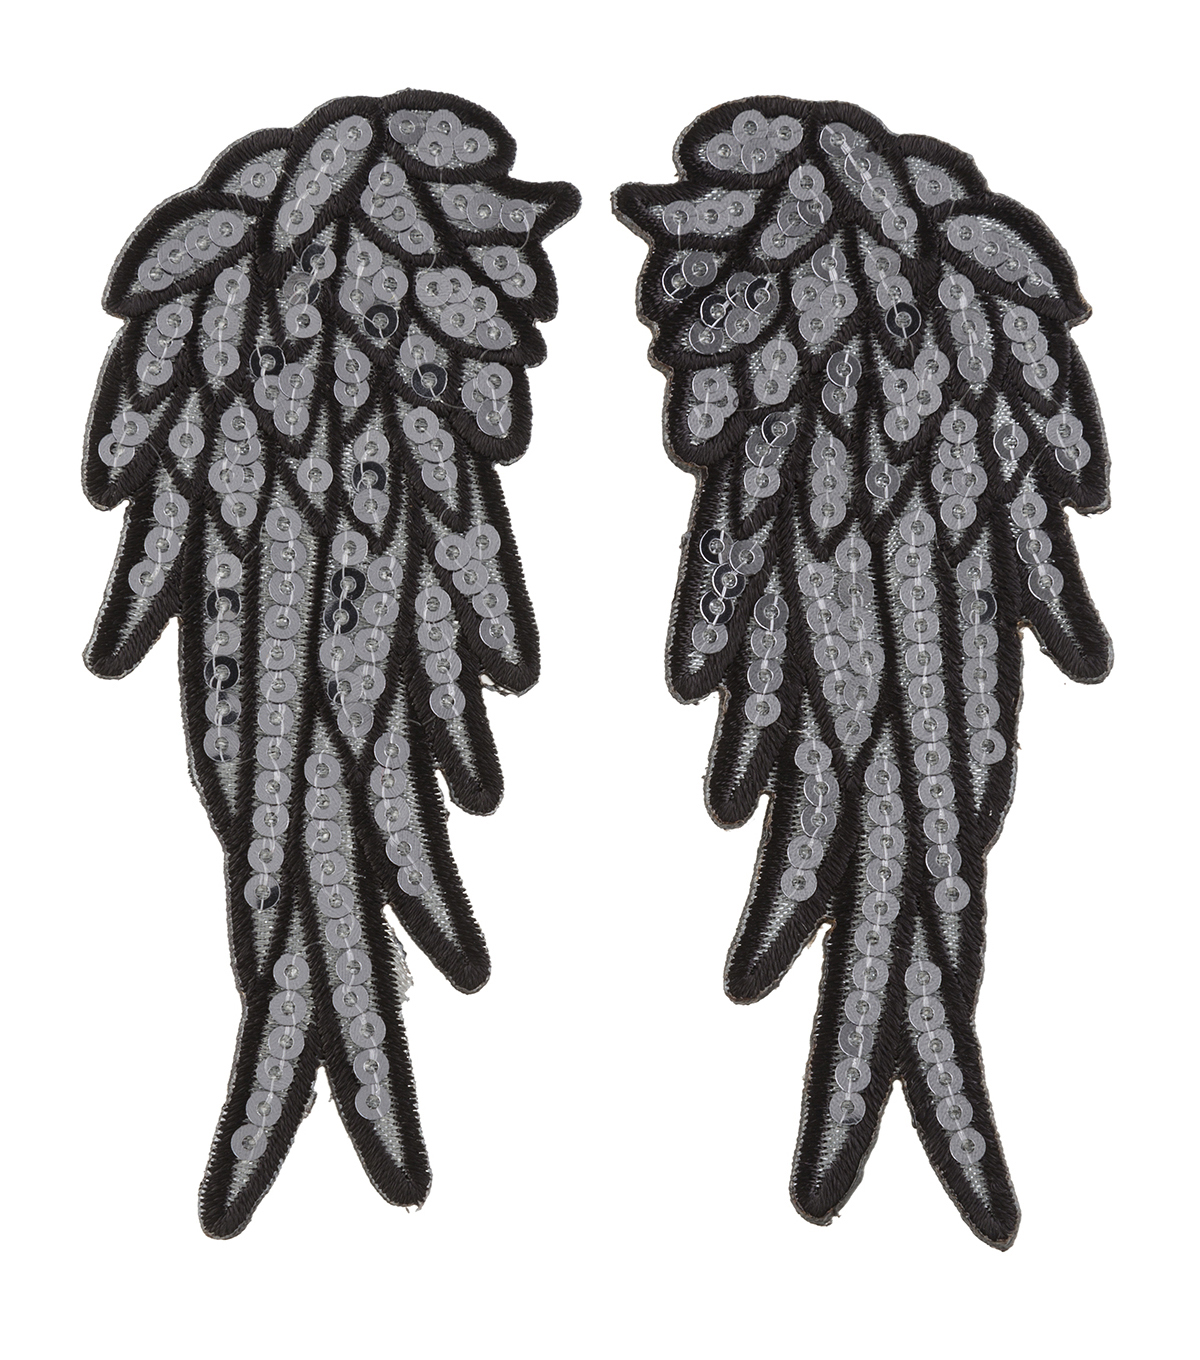 Simplicity 2 pk Angel Wing Iron-on Appliques with Sequins-Silver